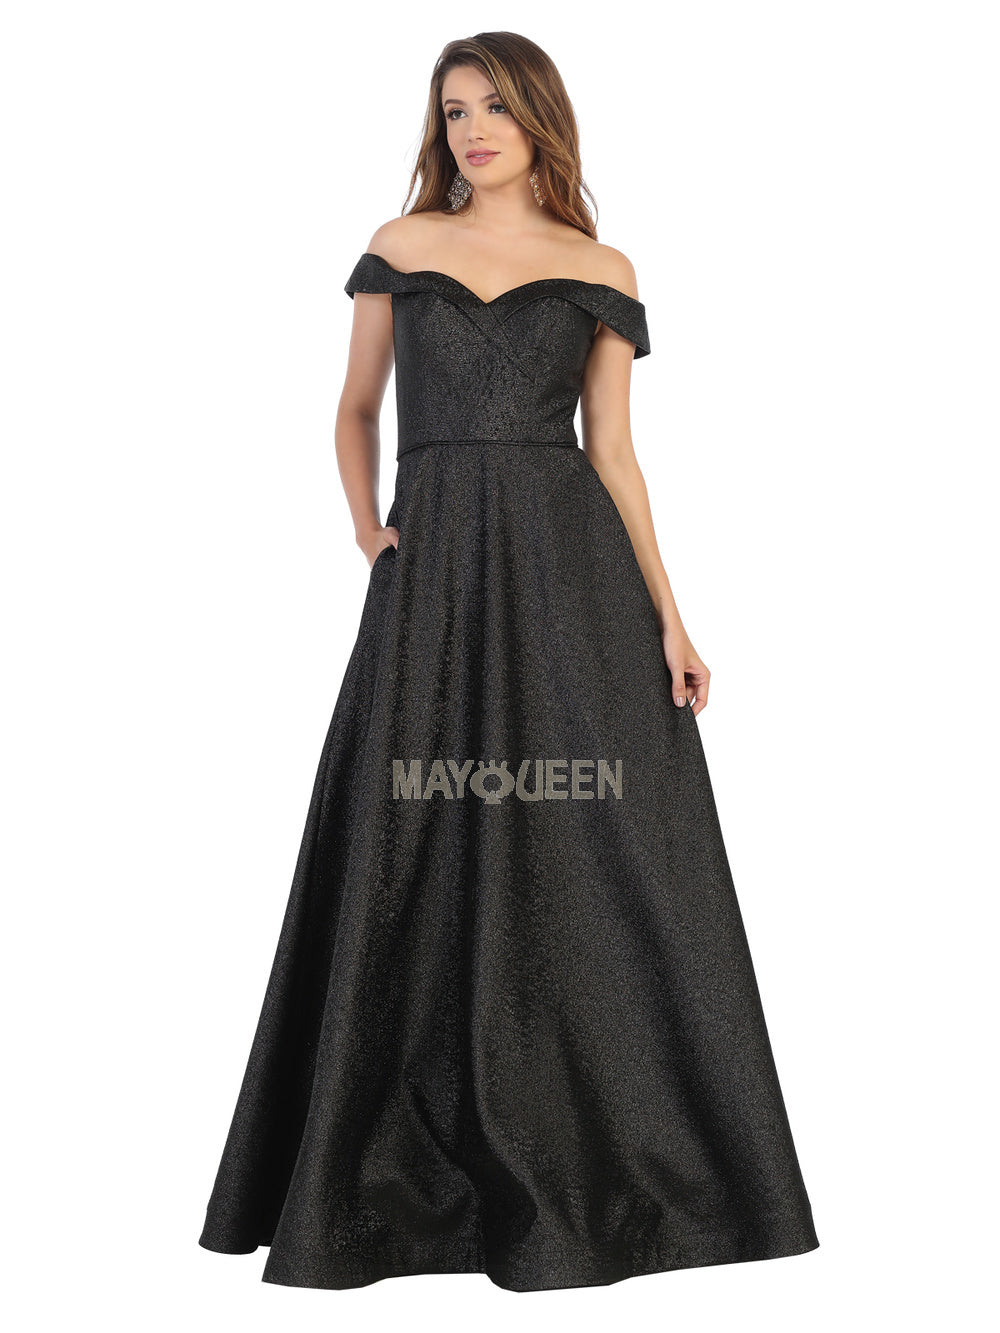 Mayqueen Size Chart E MQ 7793 - Off the Shoulder Metallic Ball Gown with Sweetheart Neckline and Pockets - Diggz Prom